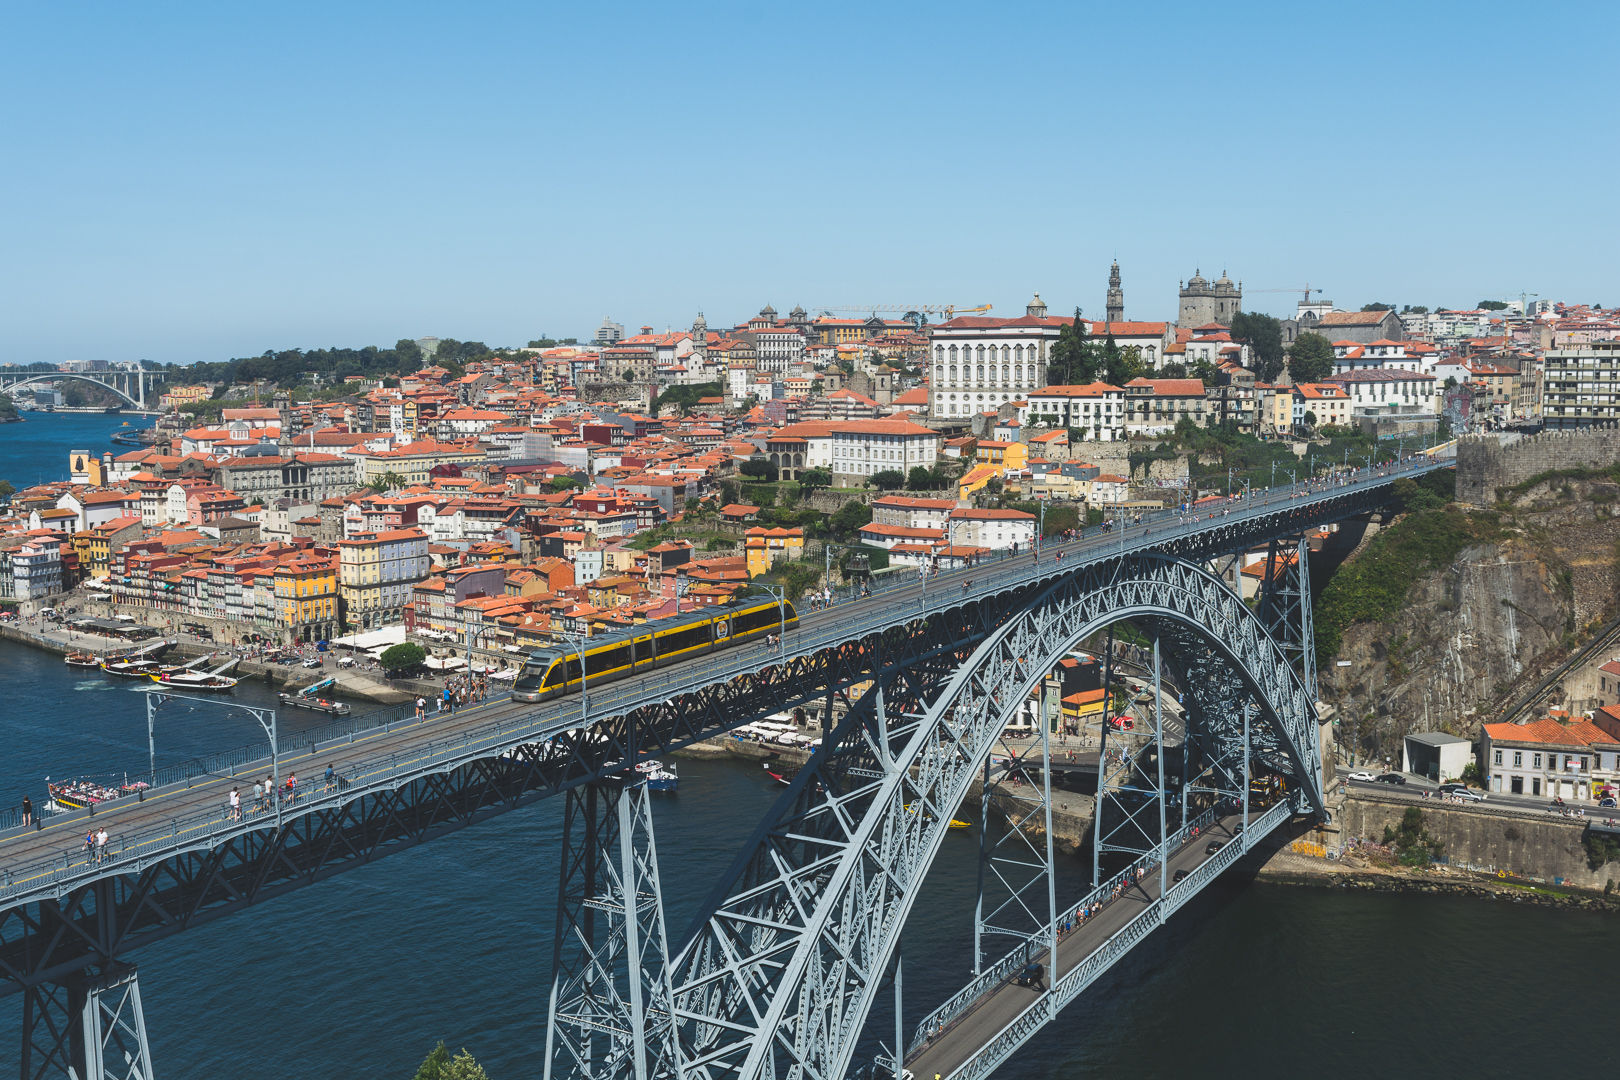 The famous Luis I bridge and the Ribeira area in Porto viewed from Gaia